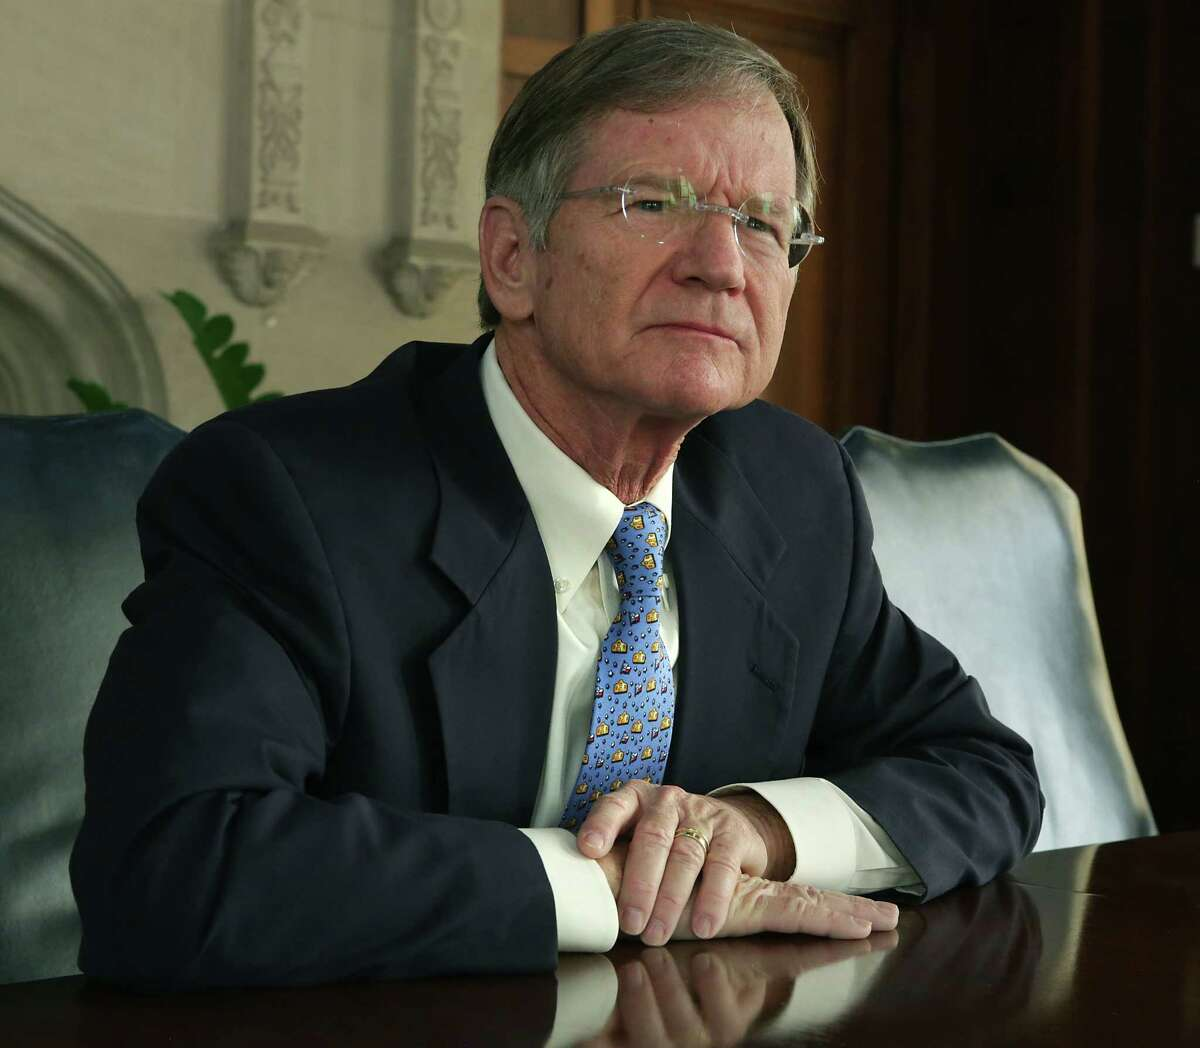 FILE - Congressman Lamar Smith speaks with members of the Express-News Editorial Board, on Oct. 13, 2016. Smith penned an essay, positing a theory that climate change may be beneficial for the economy.